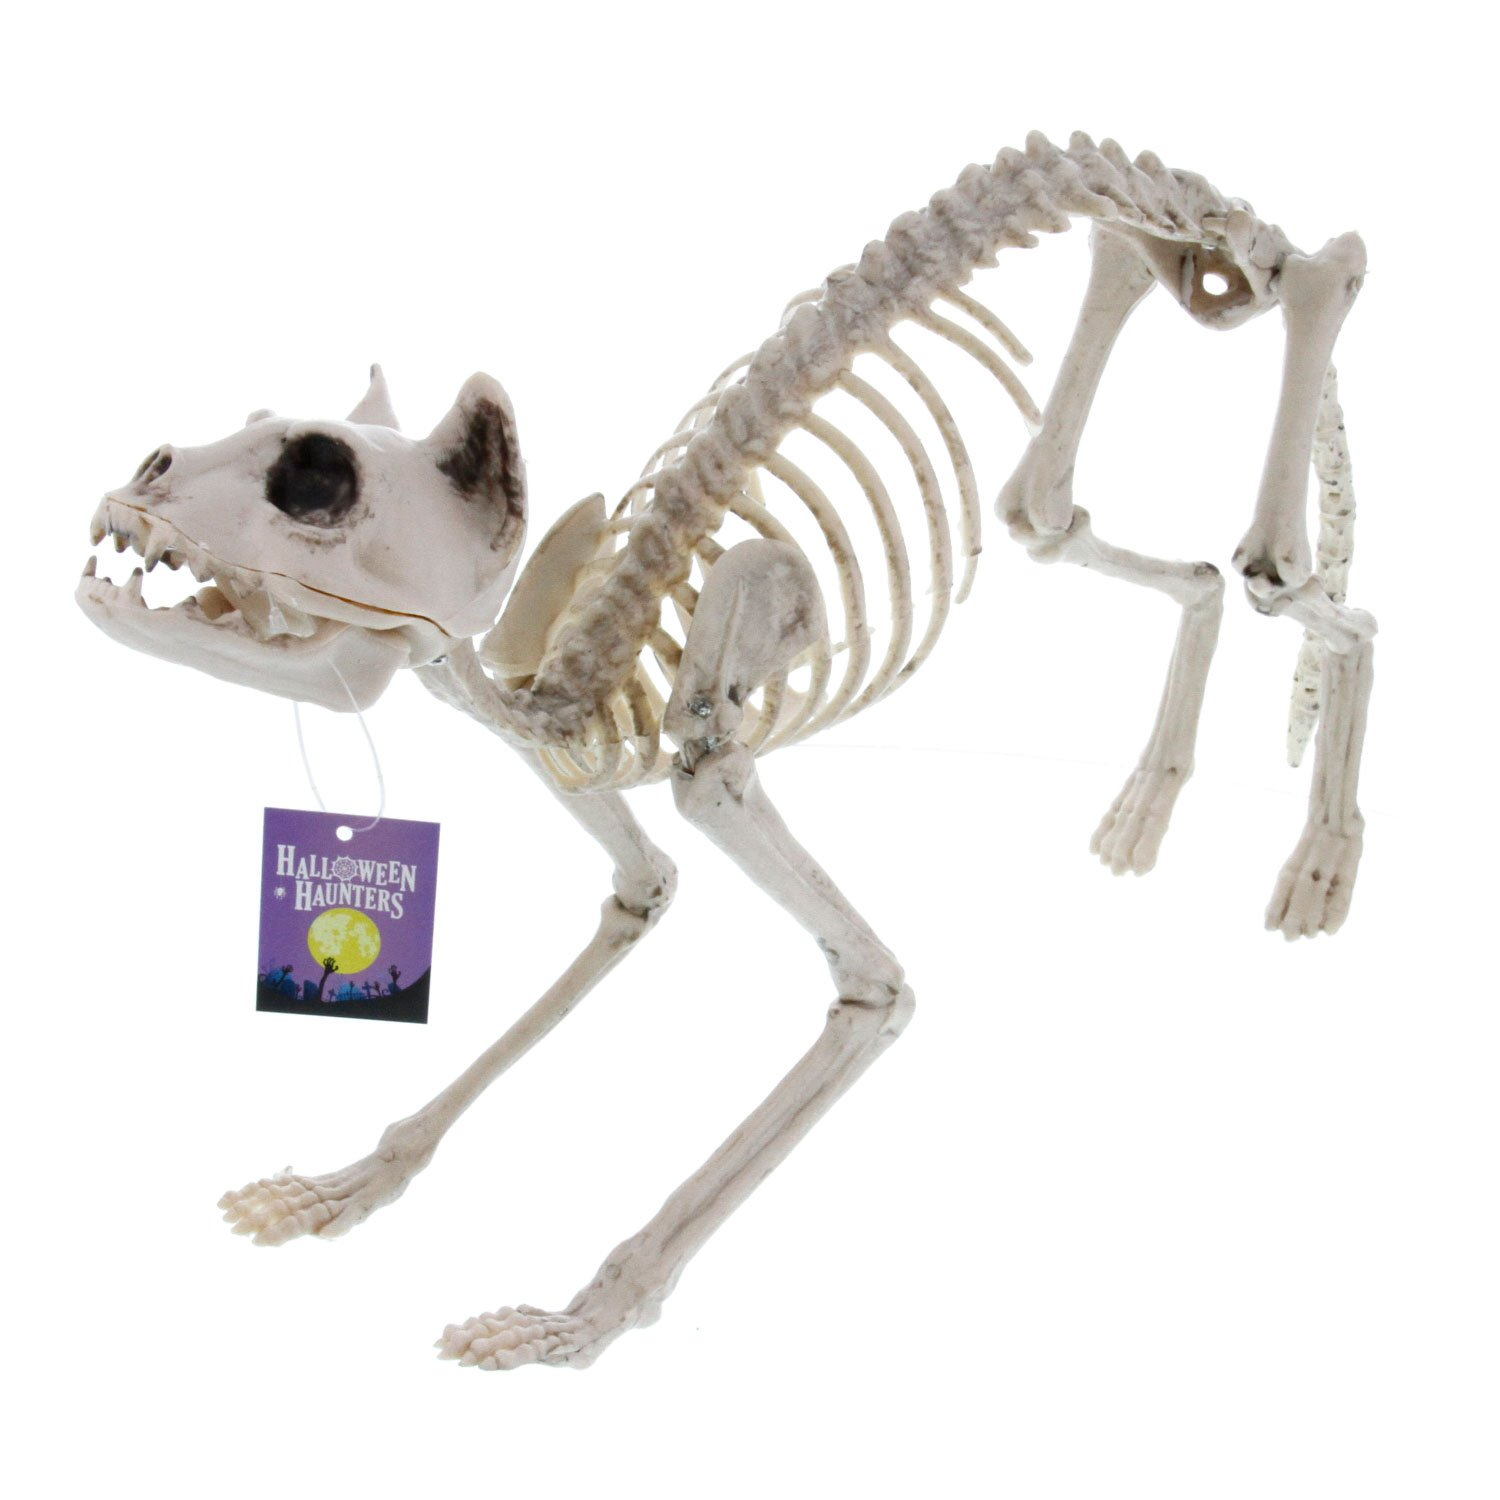 Halloween Haunters Life Size Skeleton Kitty Cat Prop Decoration - Scary 10'' High x 21'' Long Creepy Haunted House Kitten